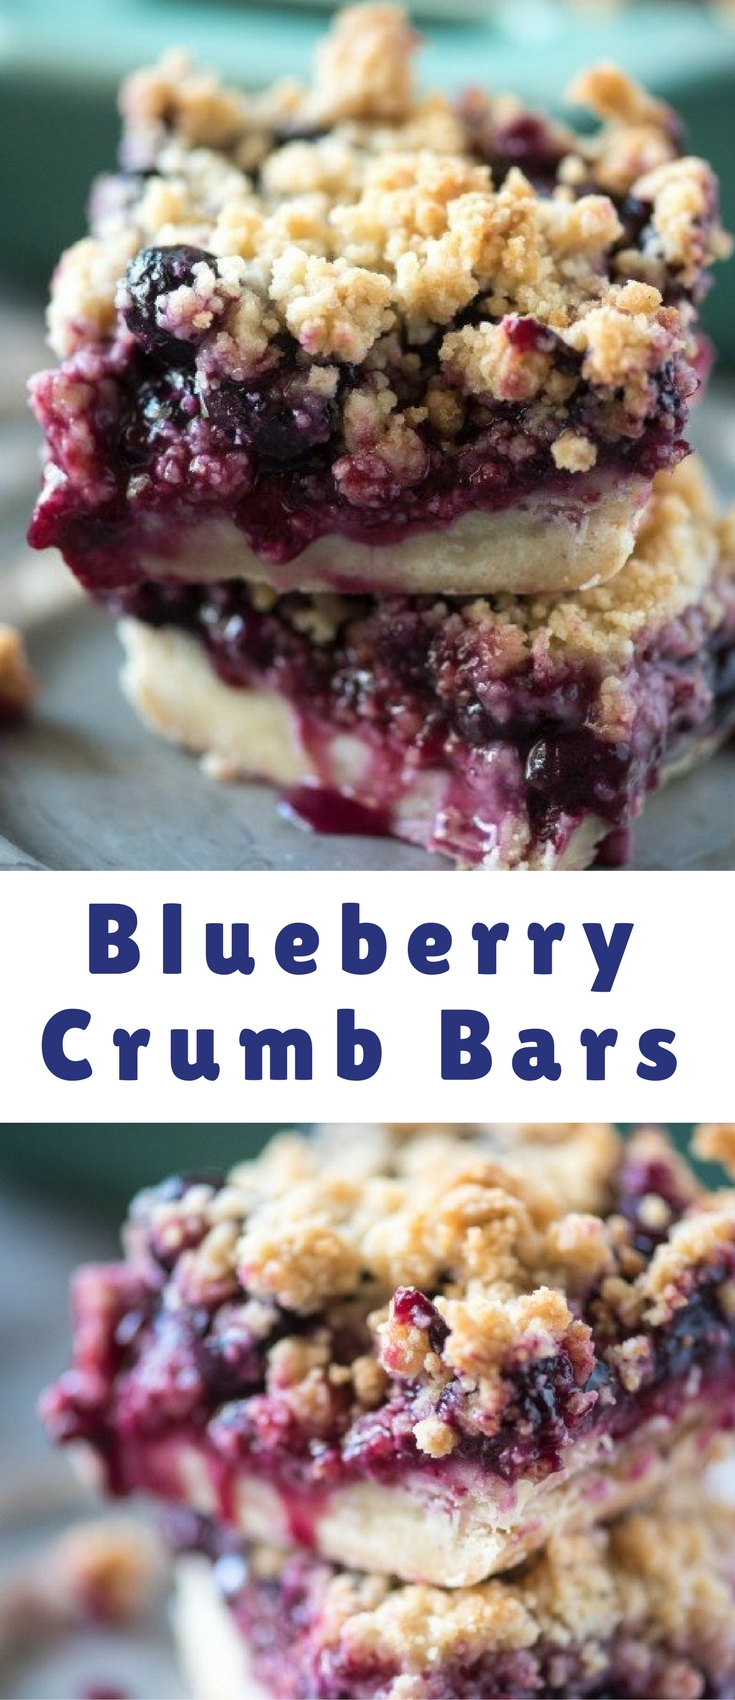 These Blueberry Crumb Bars have an easy, press-in pie crust and tons of fresh blueberry filling!